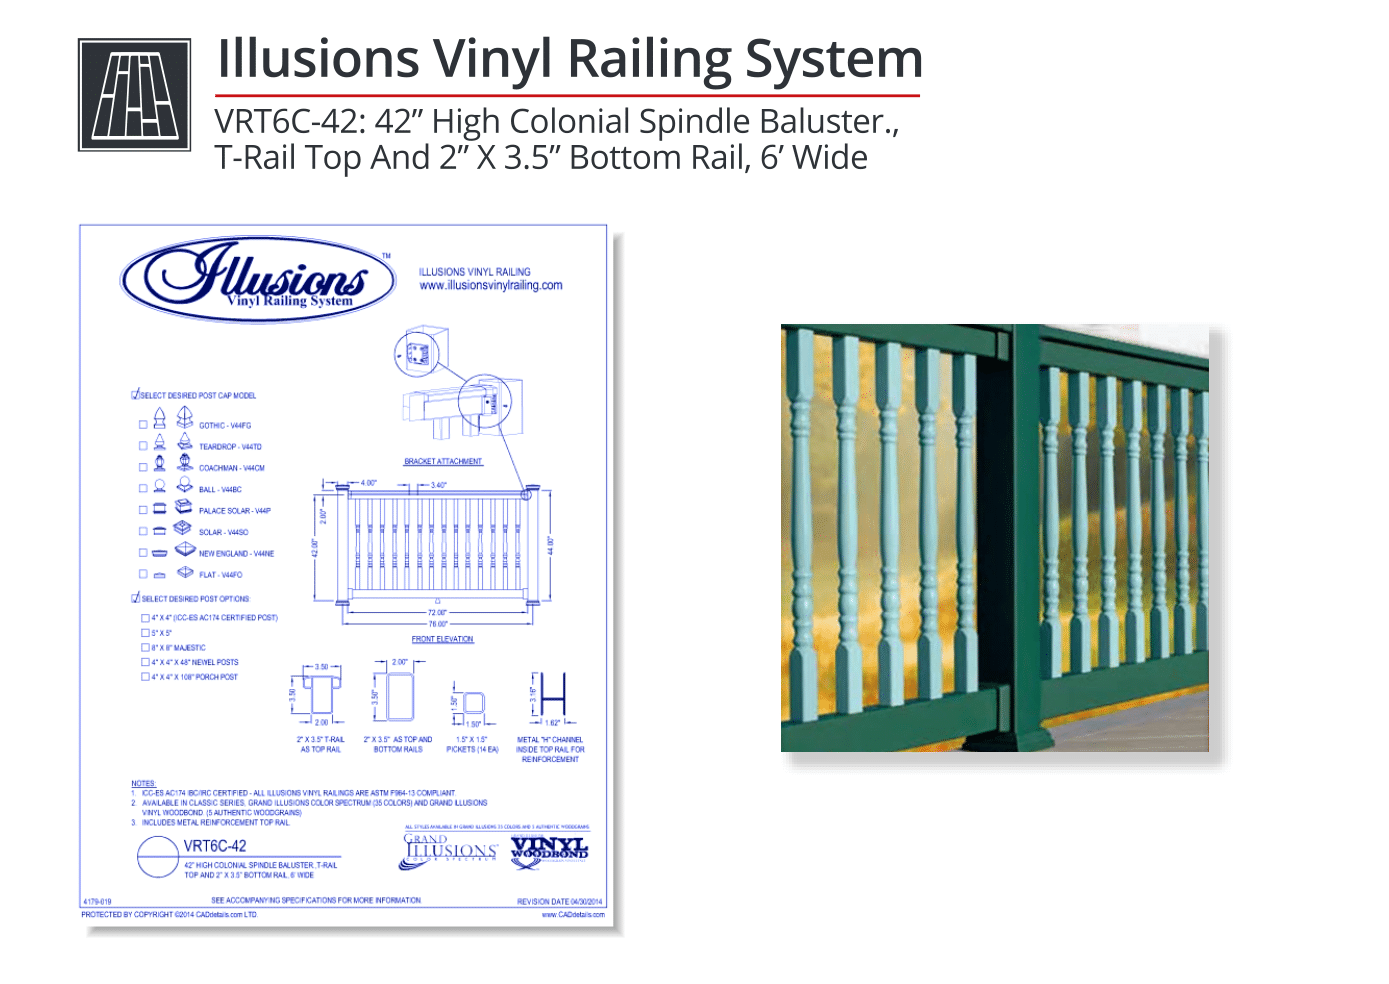 Illusions-Vinyl-Railing-System-High-Colonial-Spindle-Baluster-CADdrawing (2).png